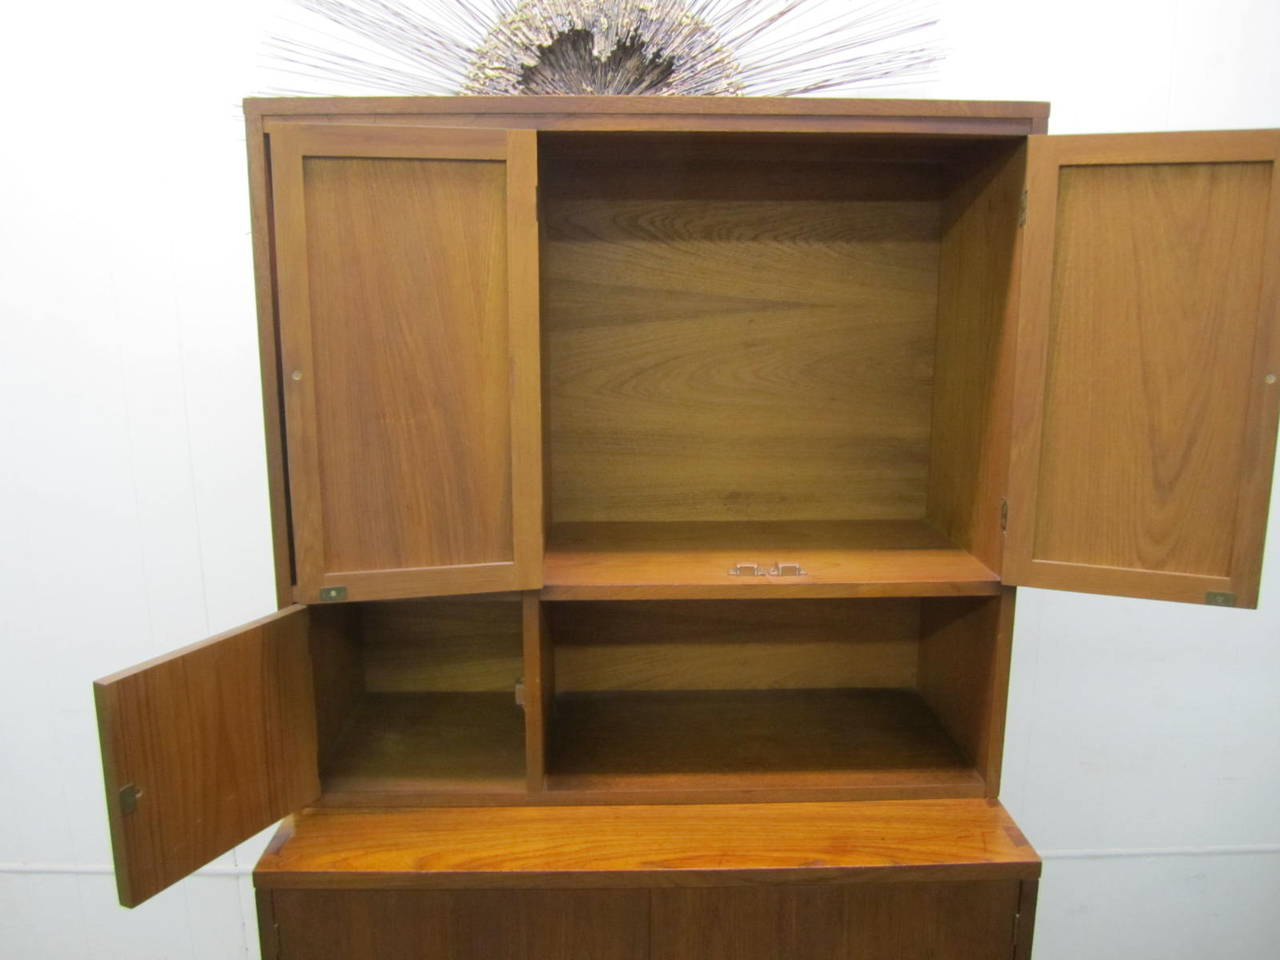 Rare Lane Acclaim Cabinet Caned Hutch, Mid-Century Modern In Good Condition For Sale In Medford, NJ